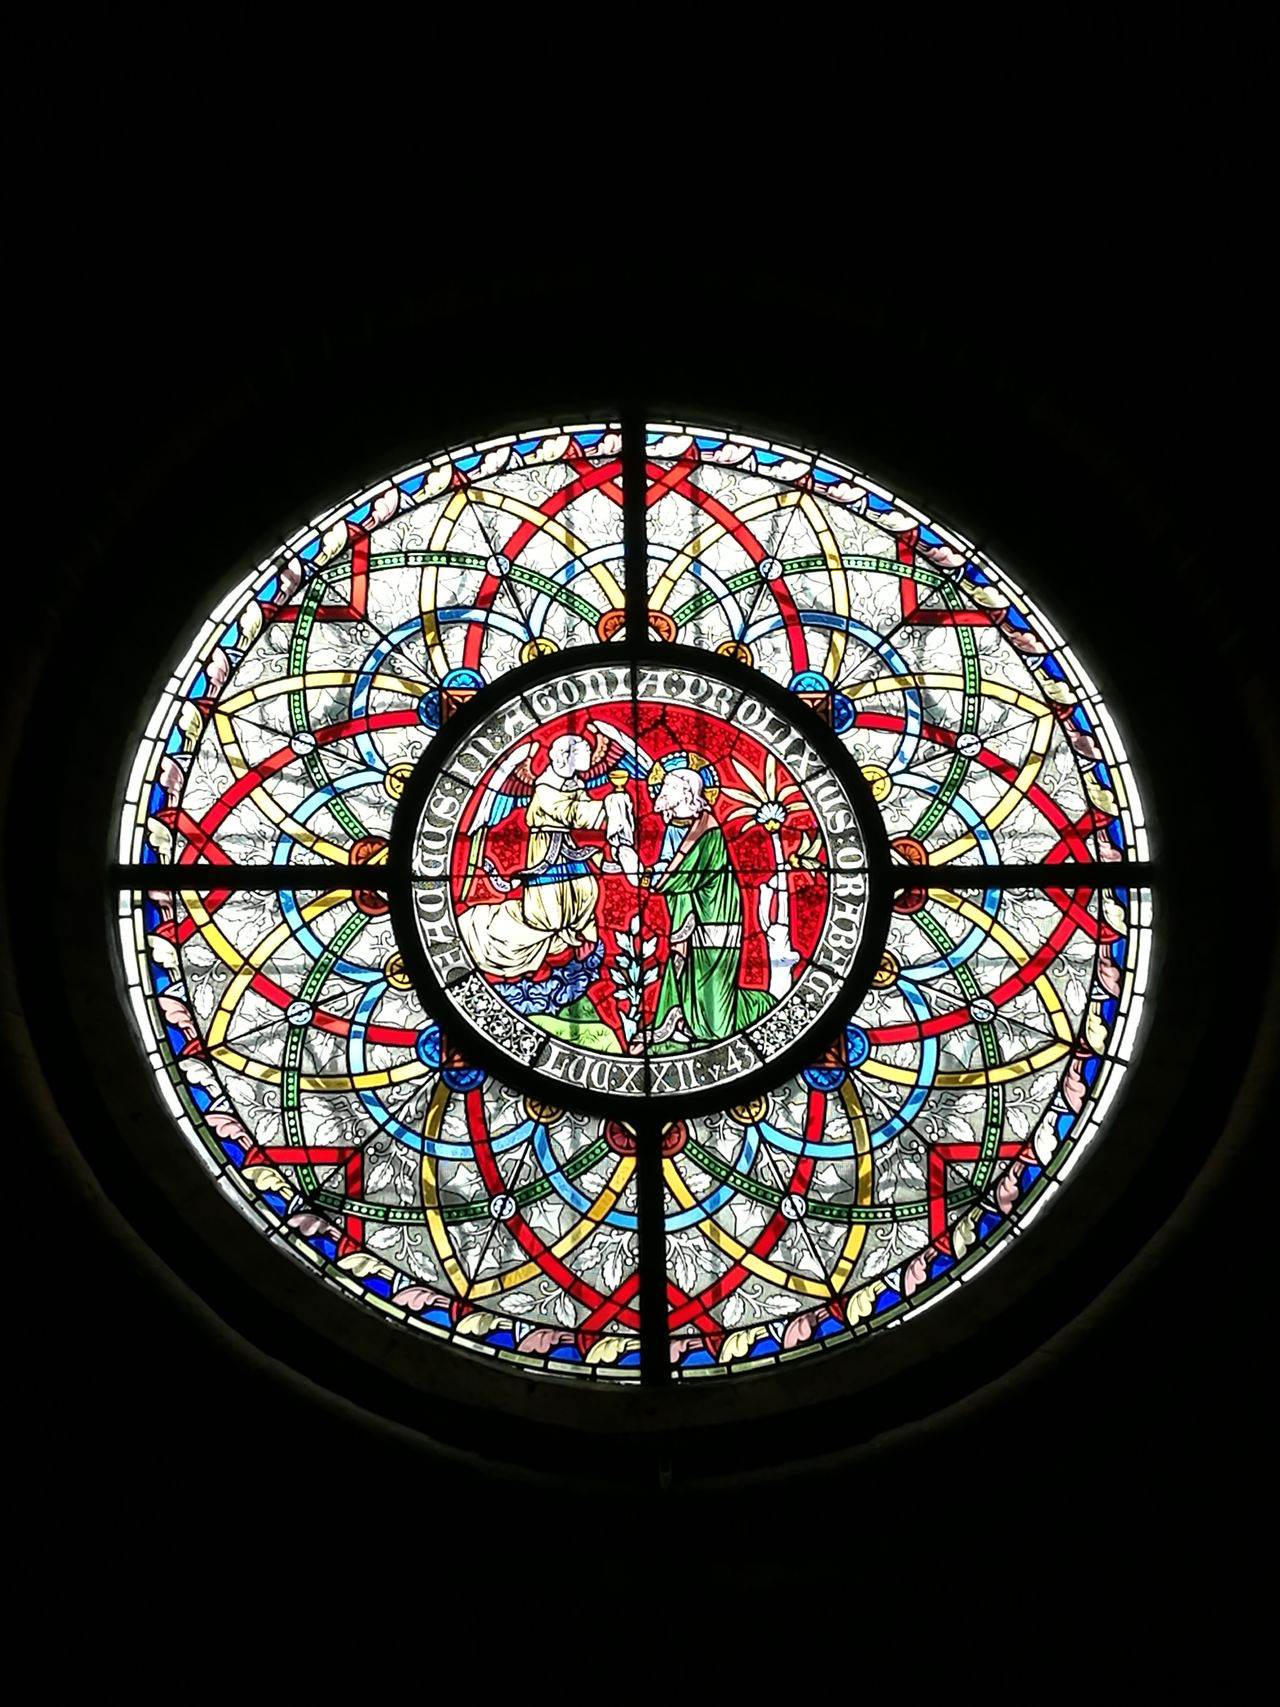 Pattern No People Indoors  Day Circle Multi Colored Indoors  Sacred Places Indoors  Window Stained Glass Architecture City Travel Destinations Churches Sacred Artofvisuals